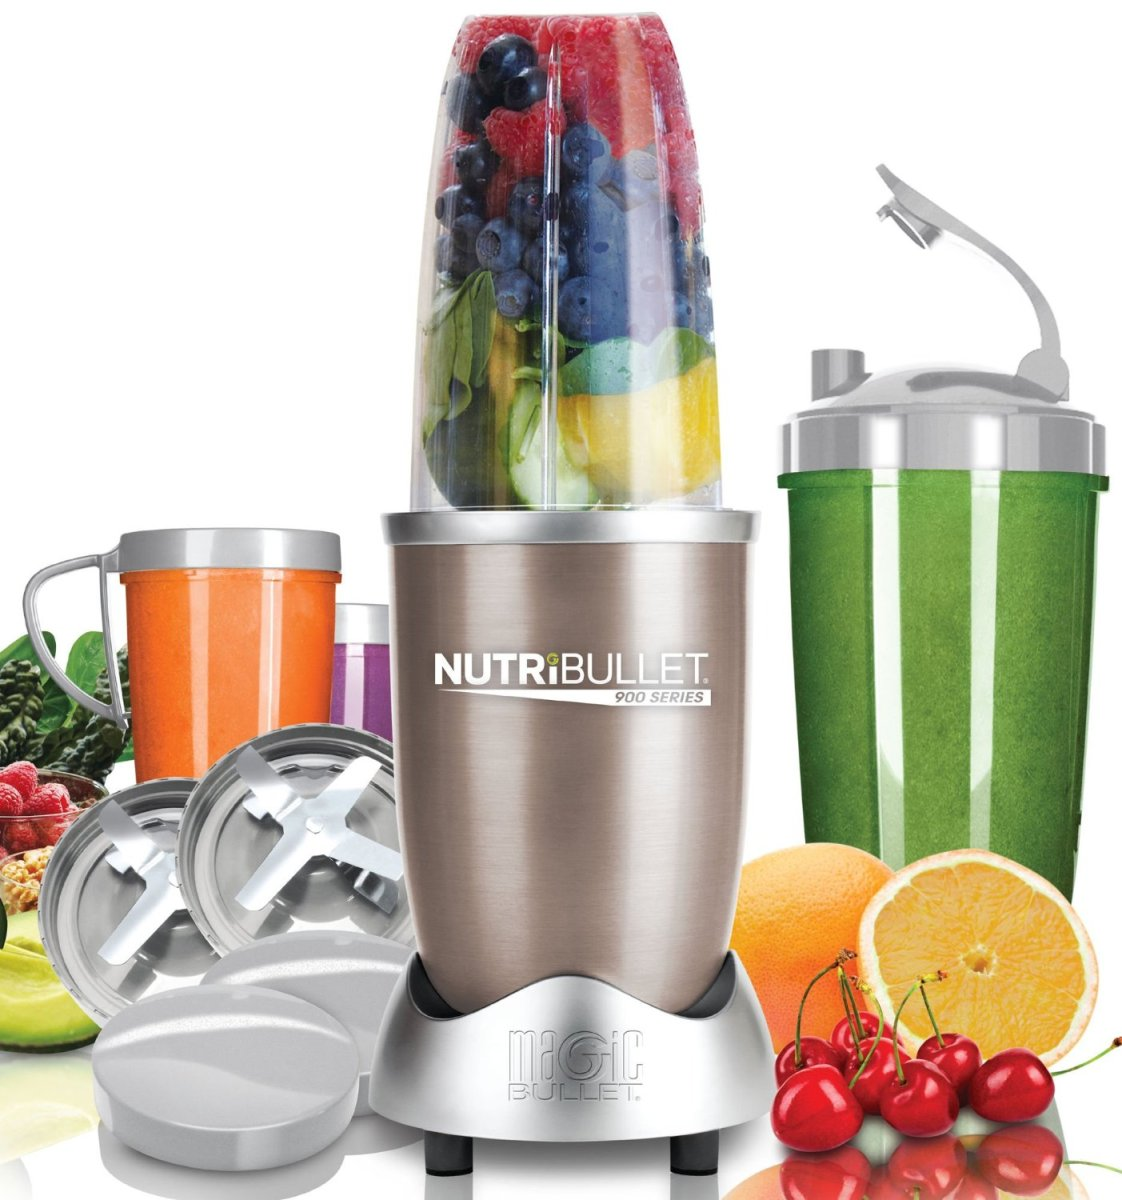 Fruit Blender Review - The Three Best Smoothie Blenders